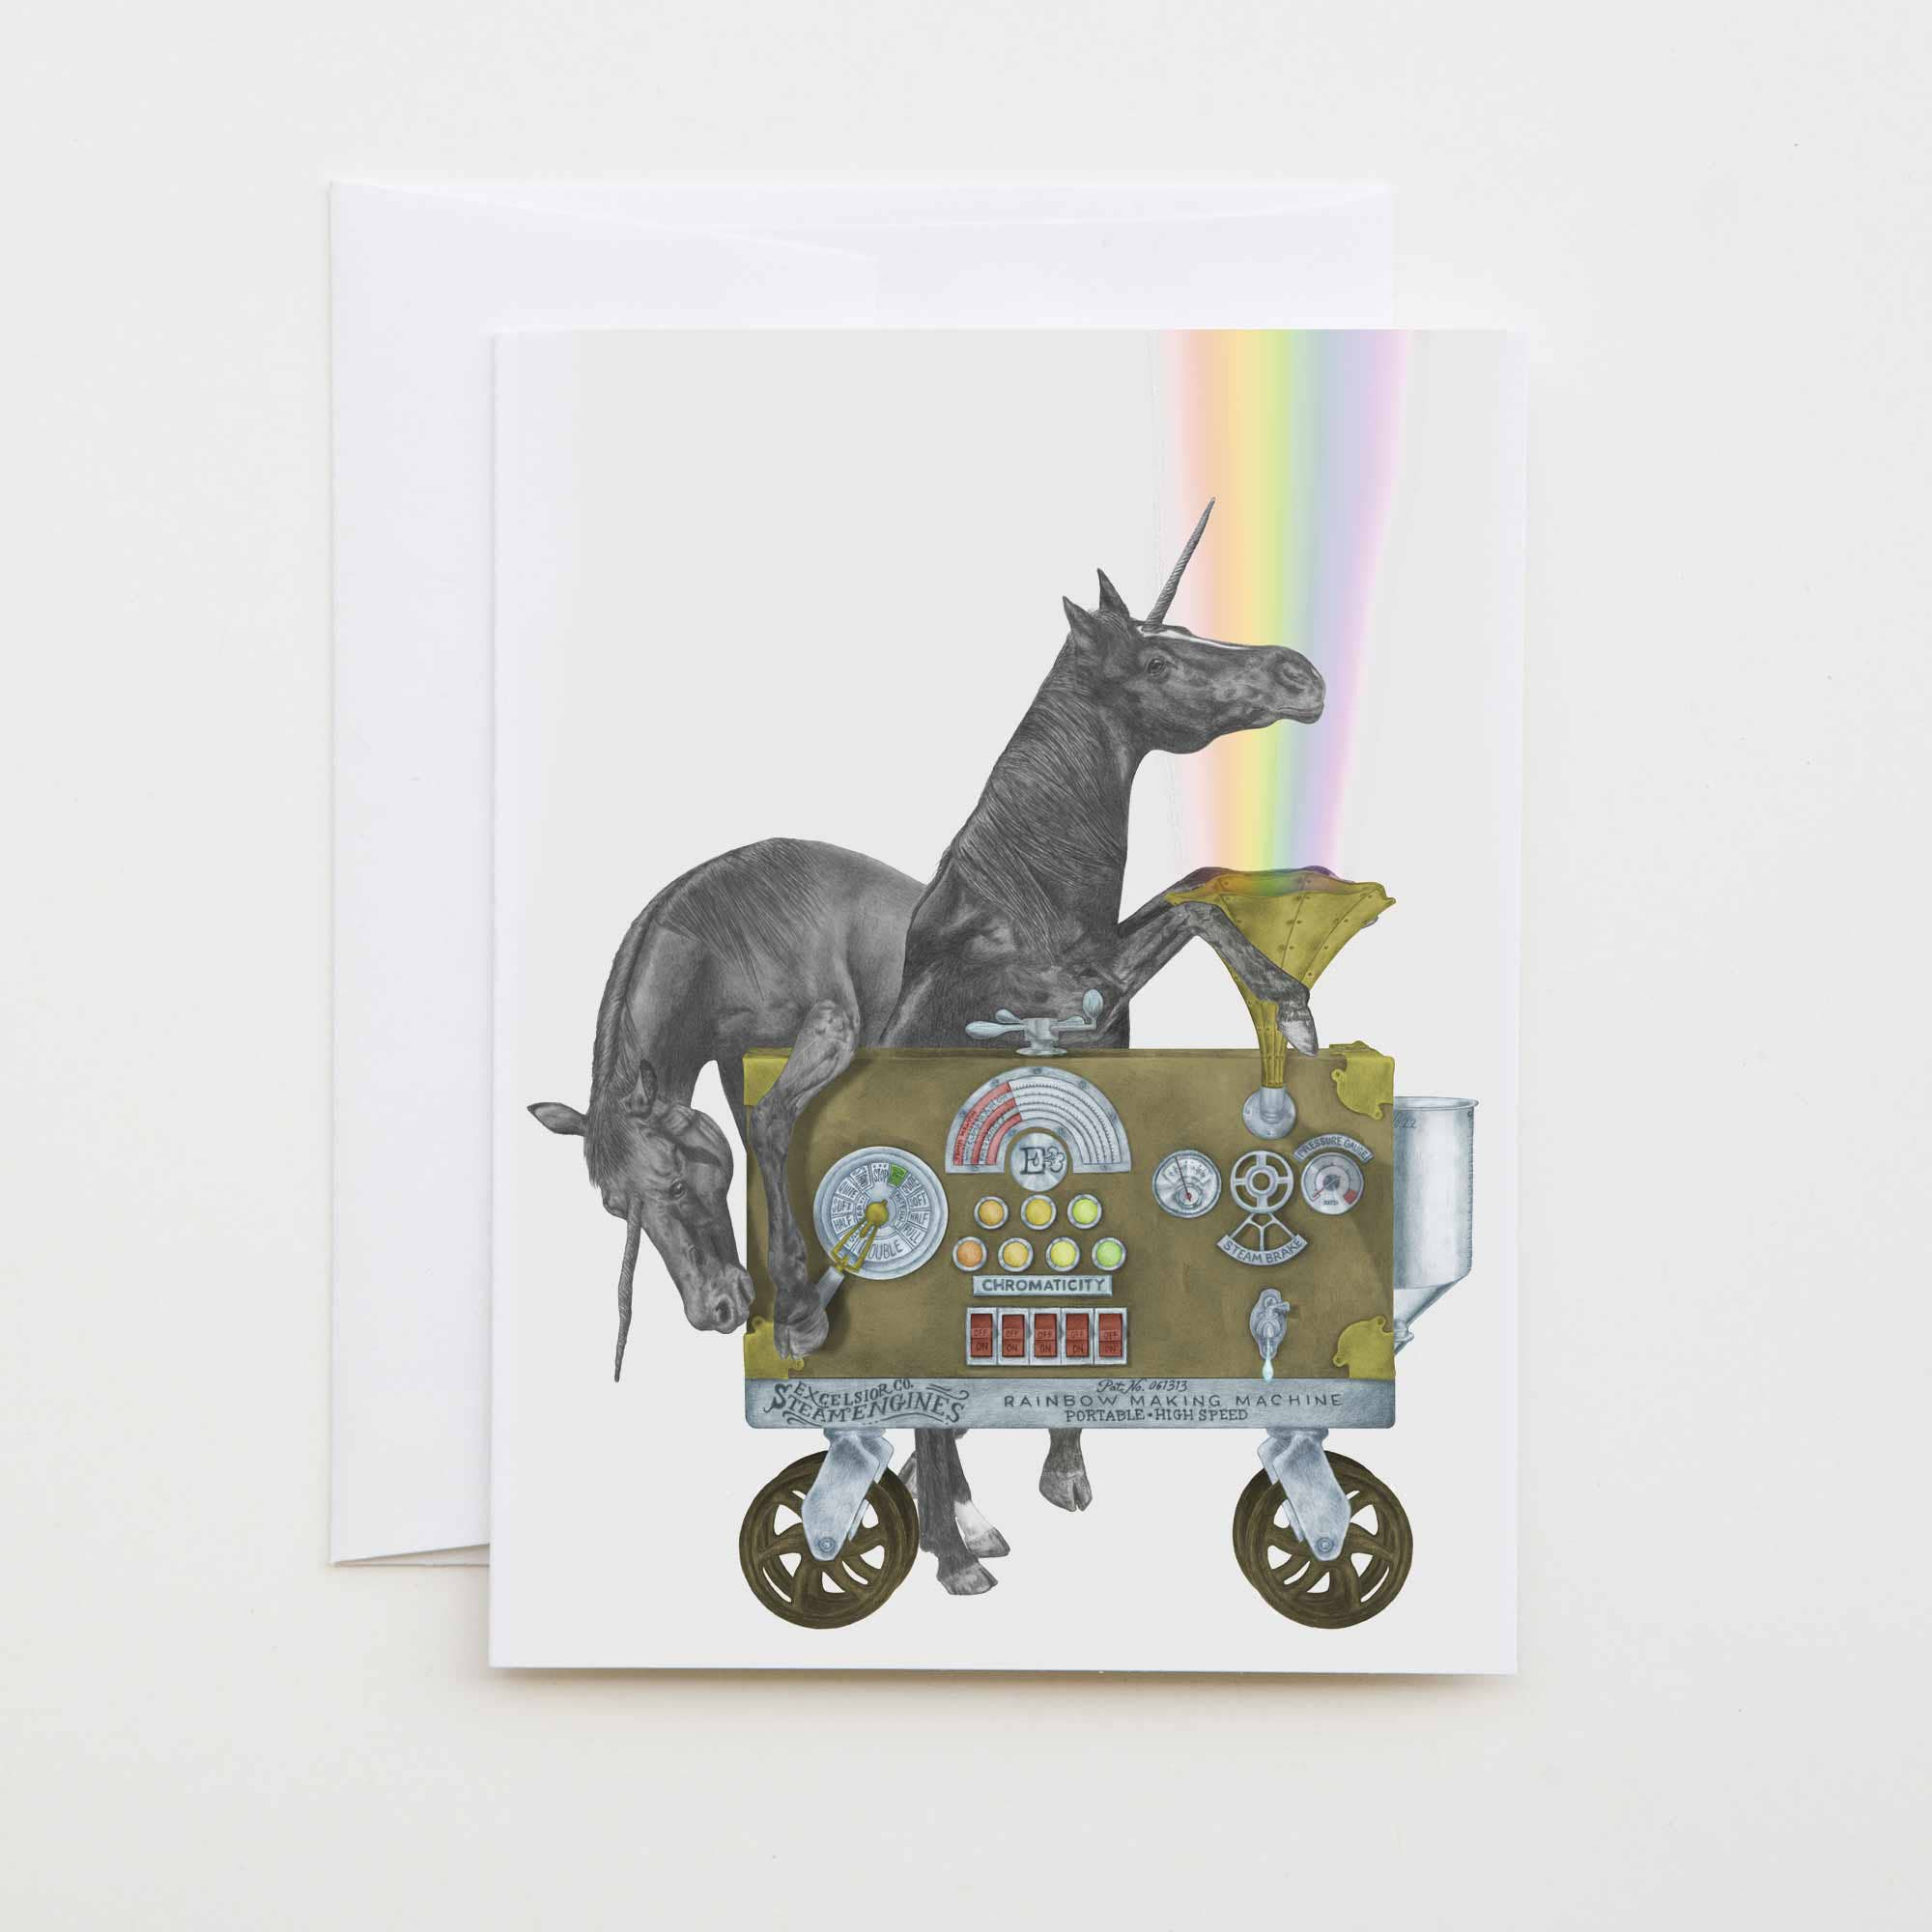 central and gus card two unicorns with a fantastic rainbow machine, named Ruby Jezebel and Jackpot Flame